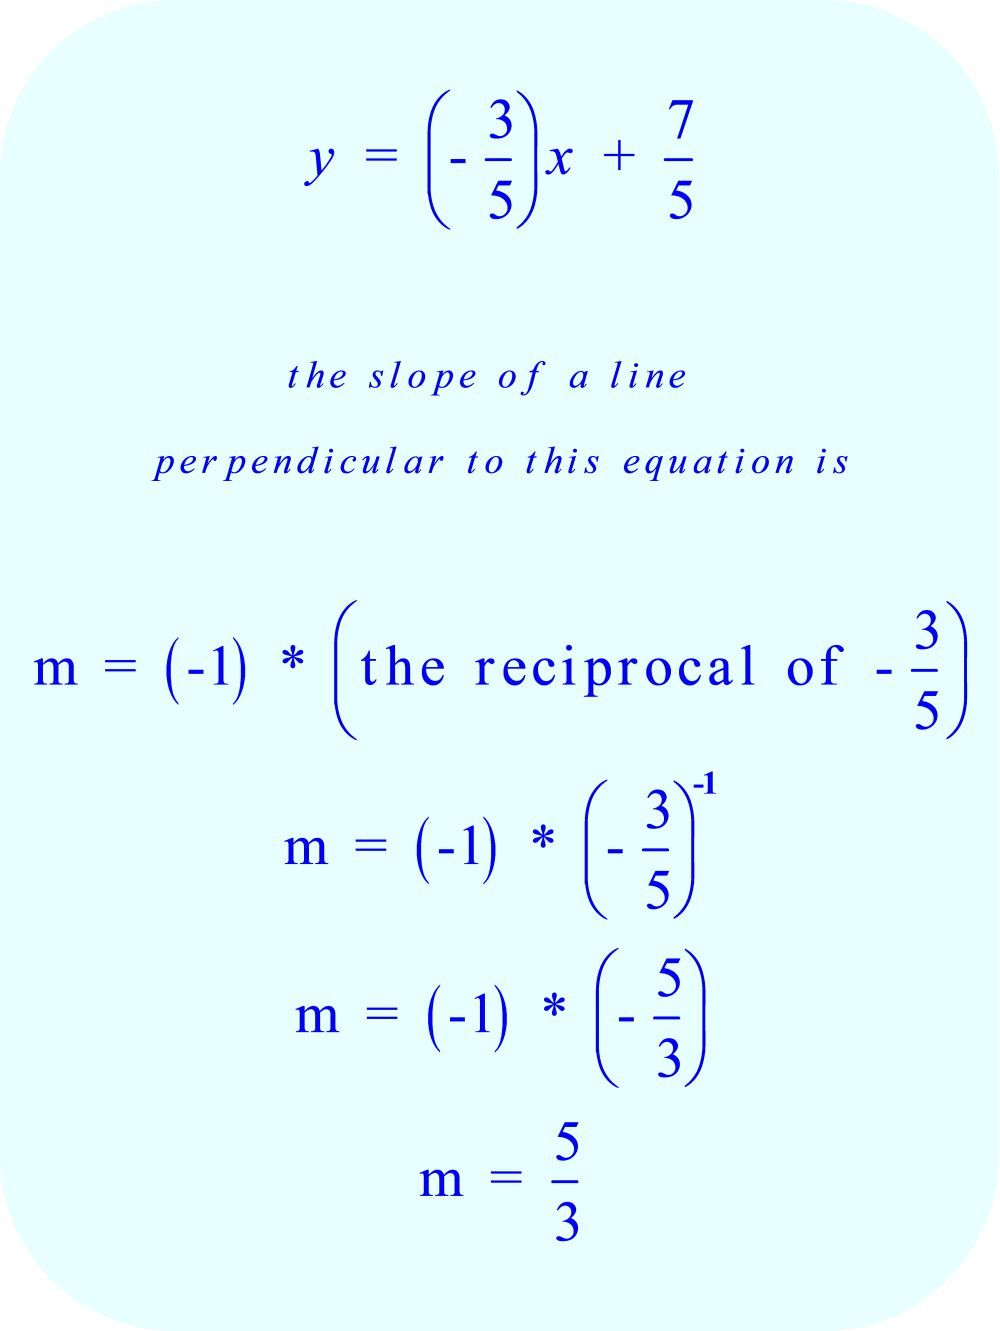 how to find the perpendicular slope of a line